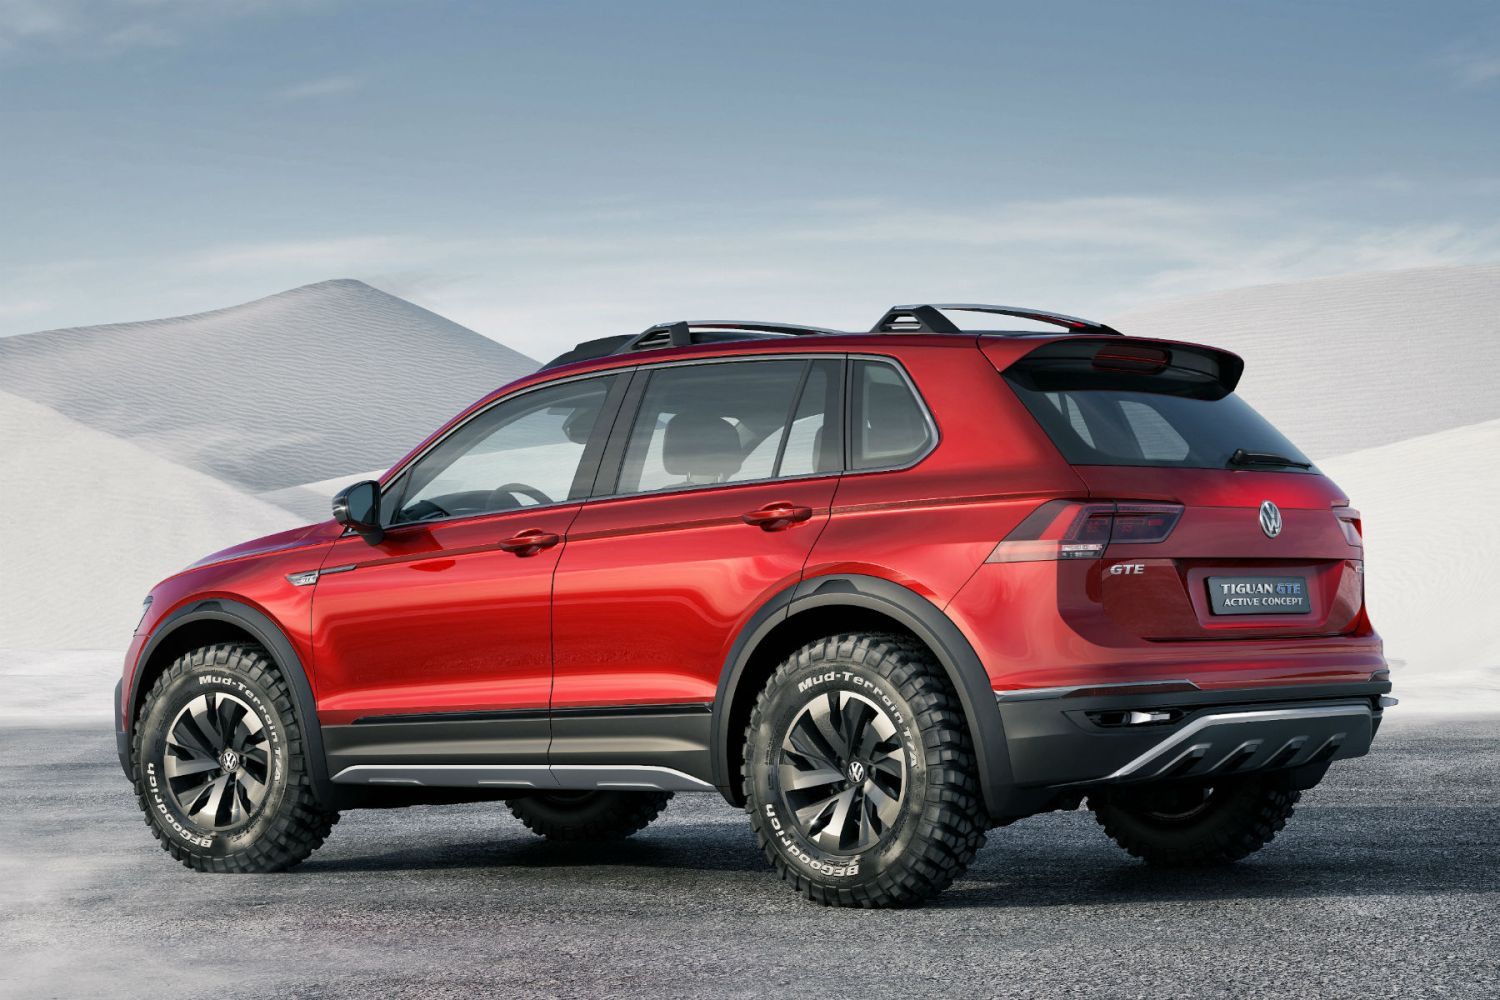 Are we going to see a production version of the Volkswagen Tiguan GTE Active Concept?